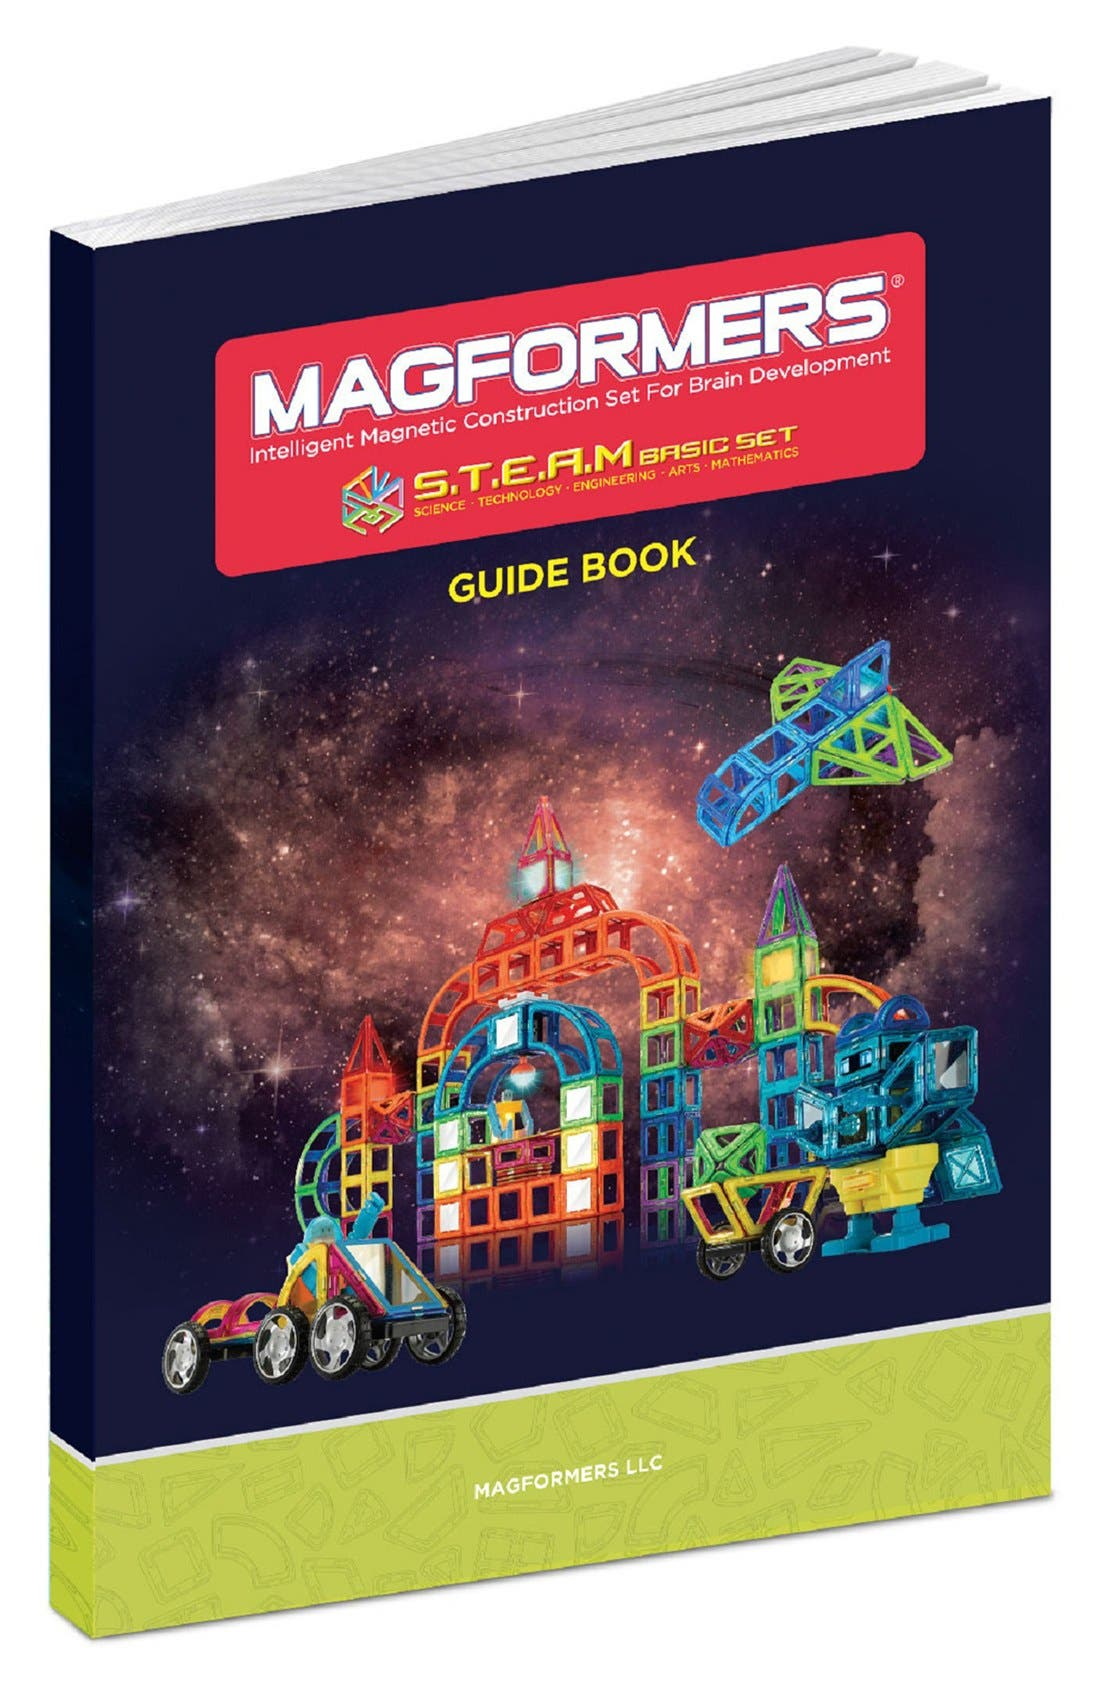 Alternate Image 2  - Magformers 'S.T.E.A.M. Basic' Magnetic Construction Set